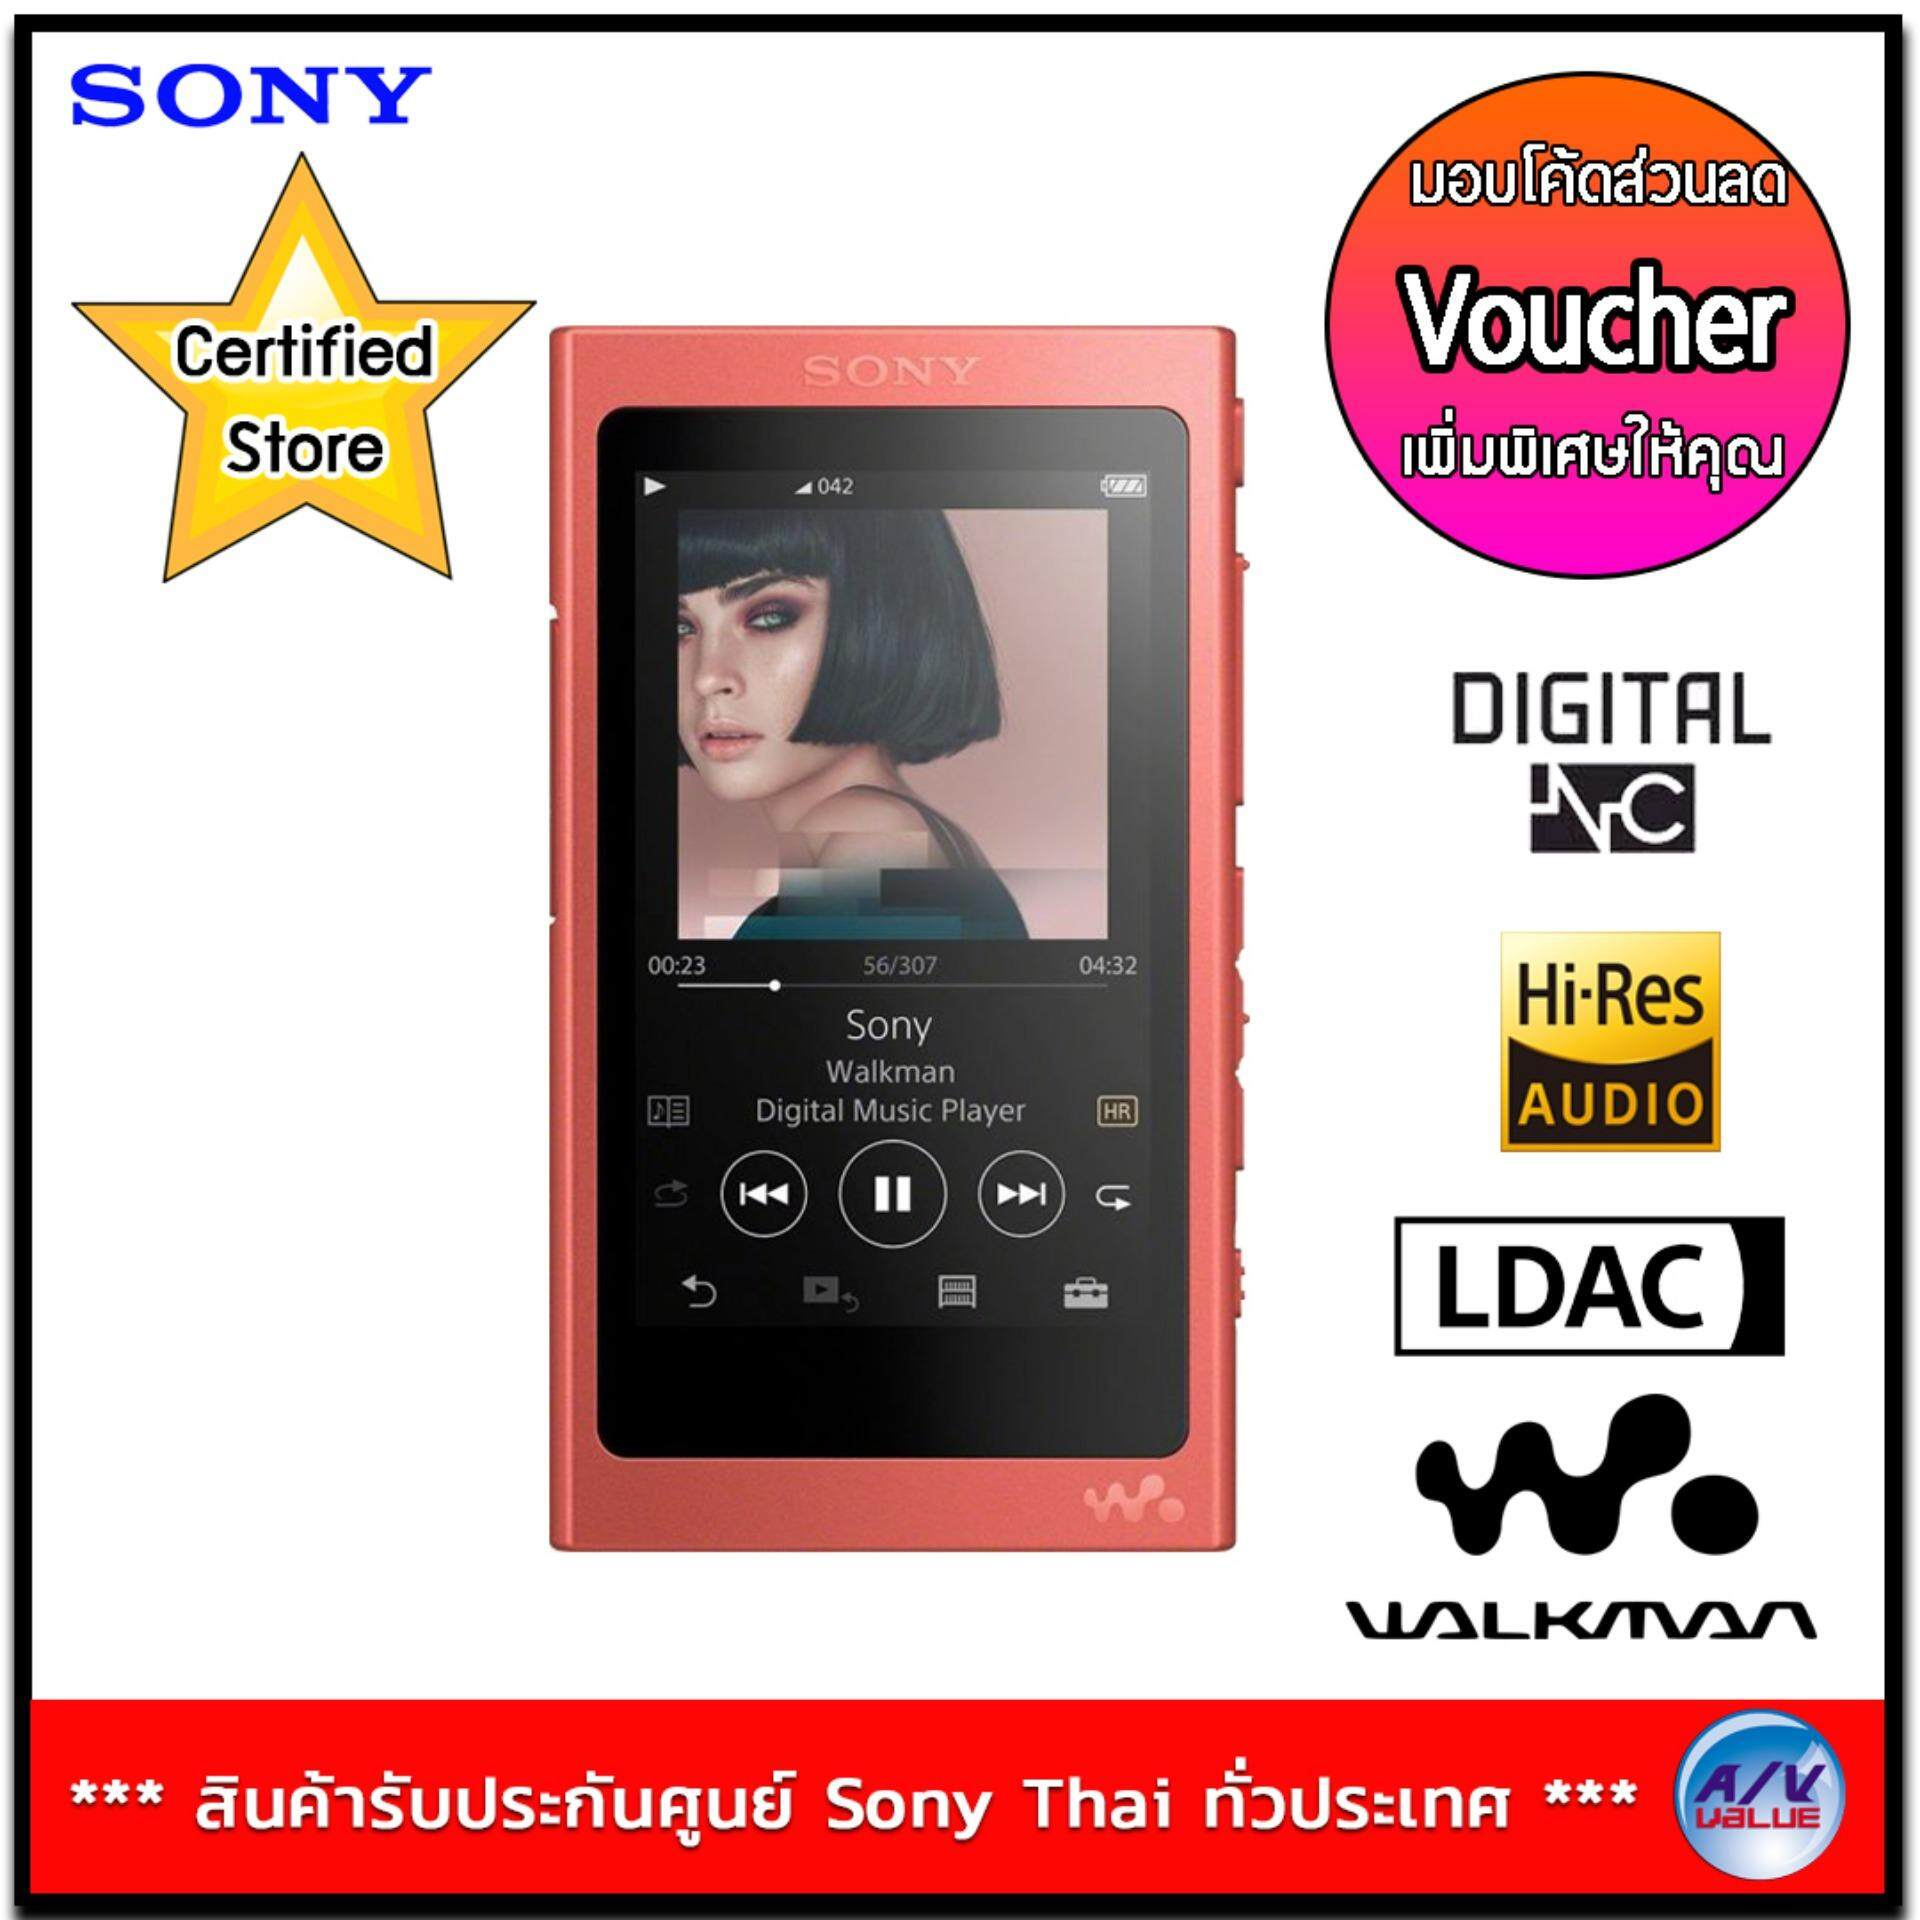 Sony Walkman With High Resolution Audio Nw A36 Red Spec Dan Daftar A35 Pink Hi Res A45 Voucher